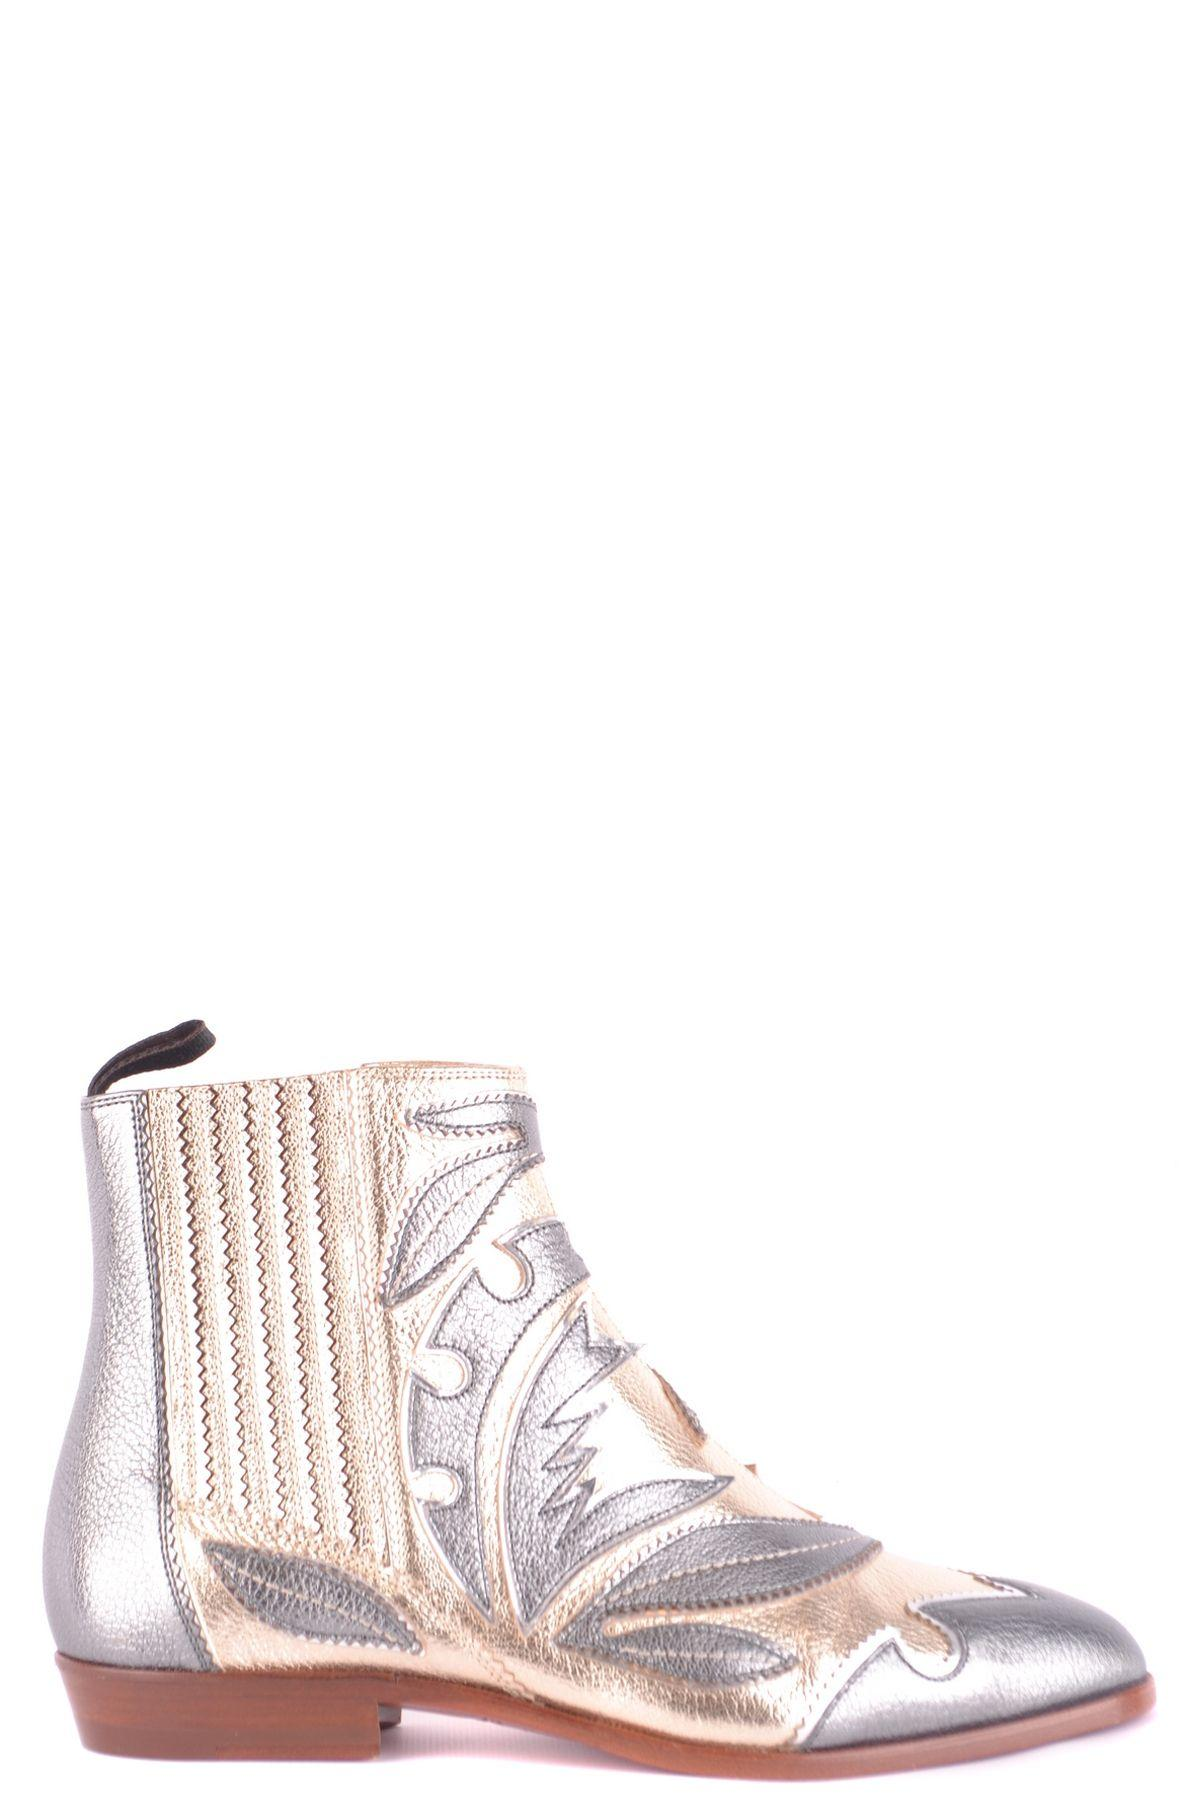 0fab6803c807d Lyst - Santoni Silver Leather Ankle Boots in Metallic